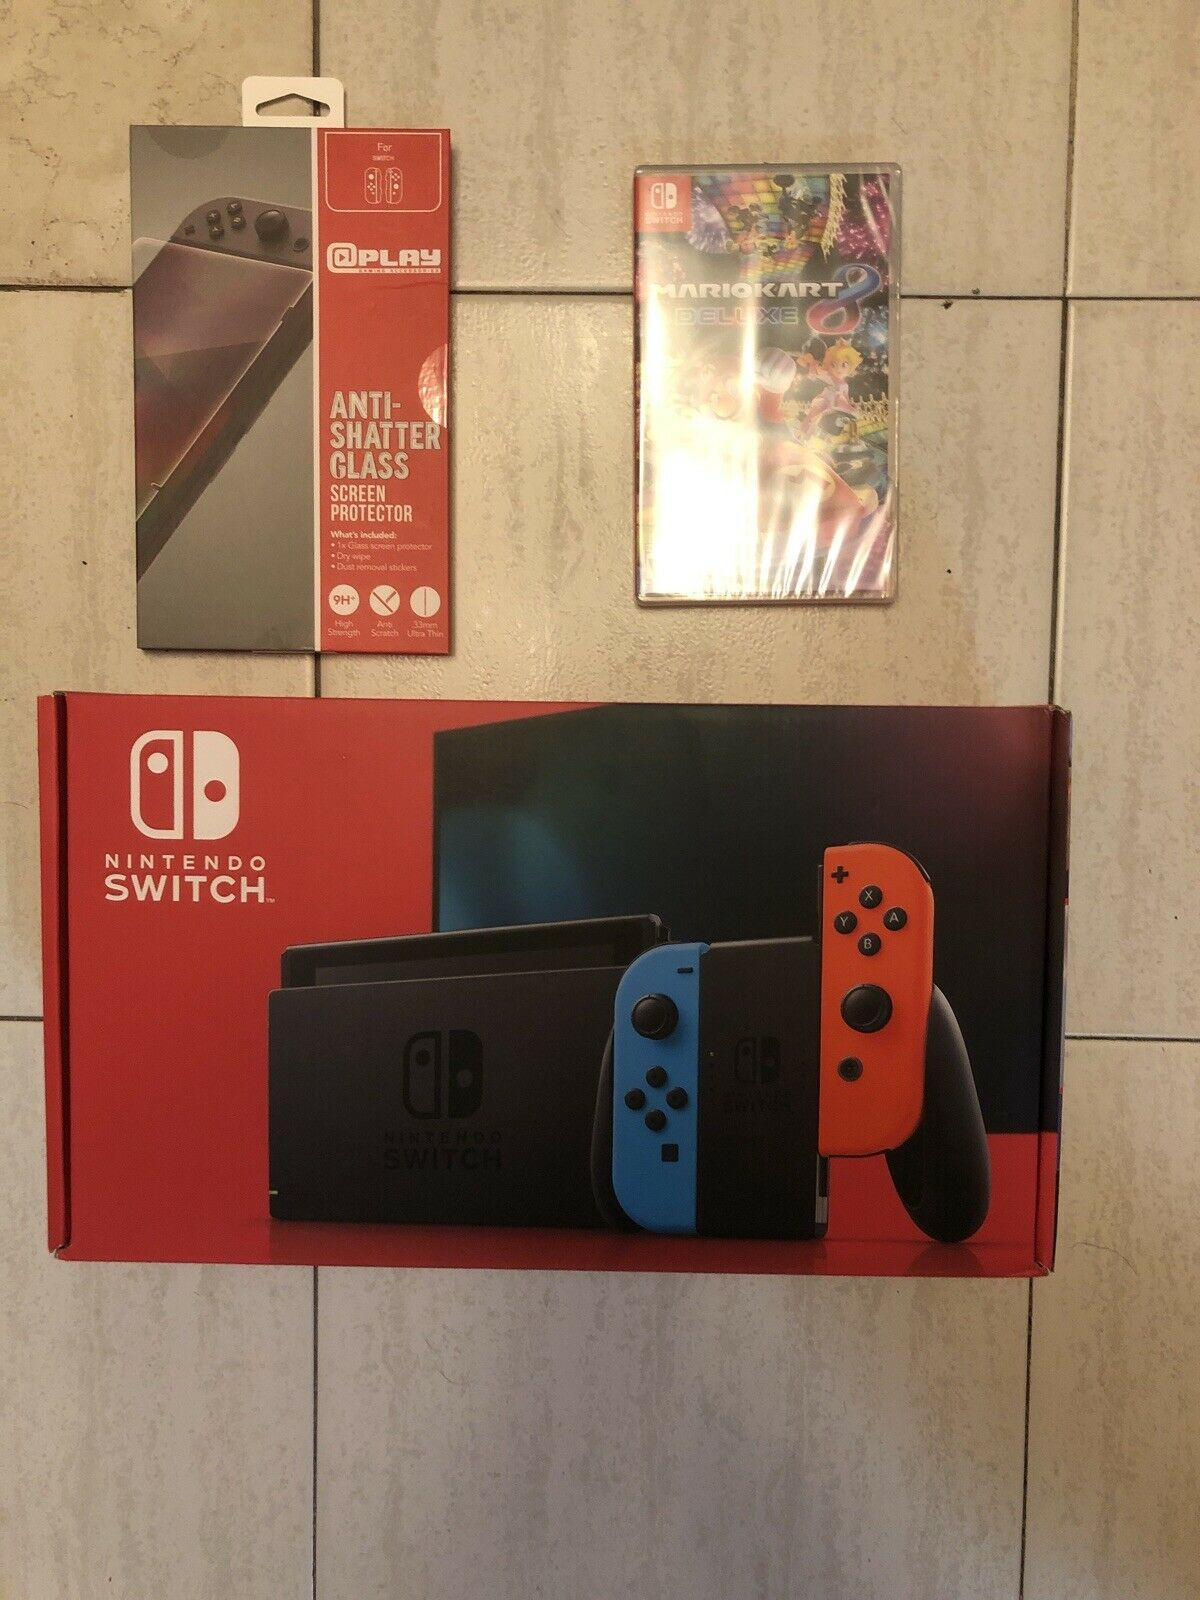 Nintendo Switch With Blue And Red Joy Con Controllers And Mario